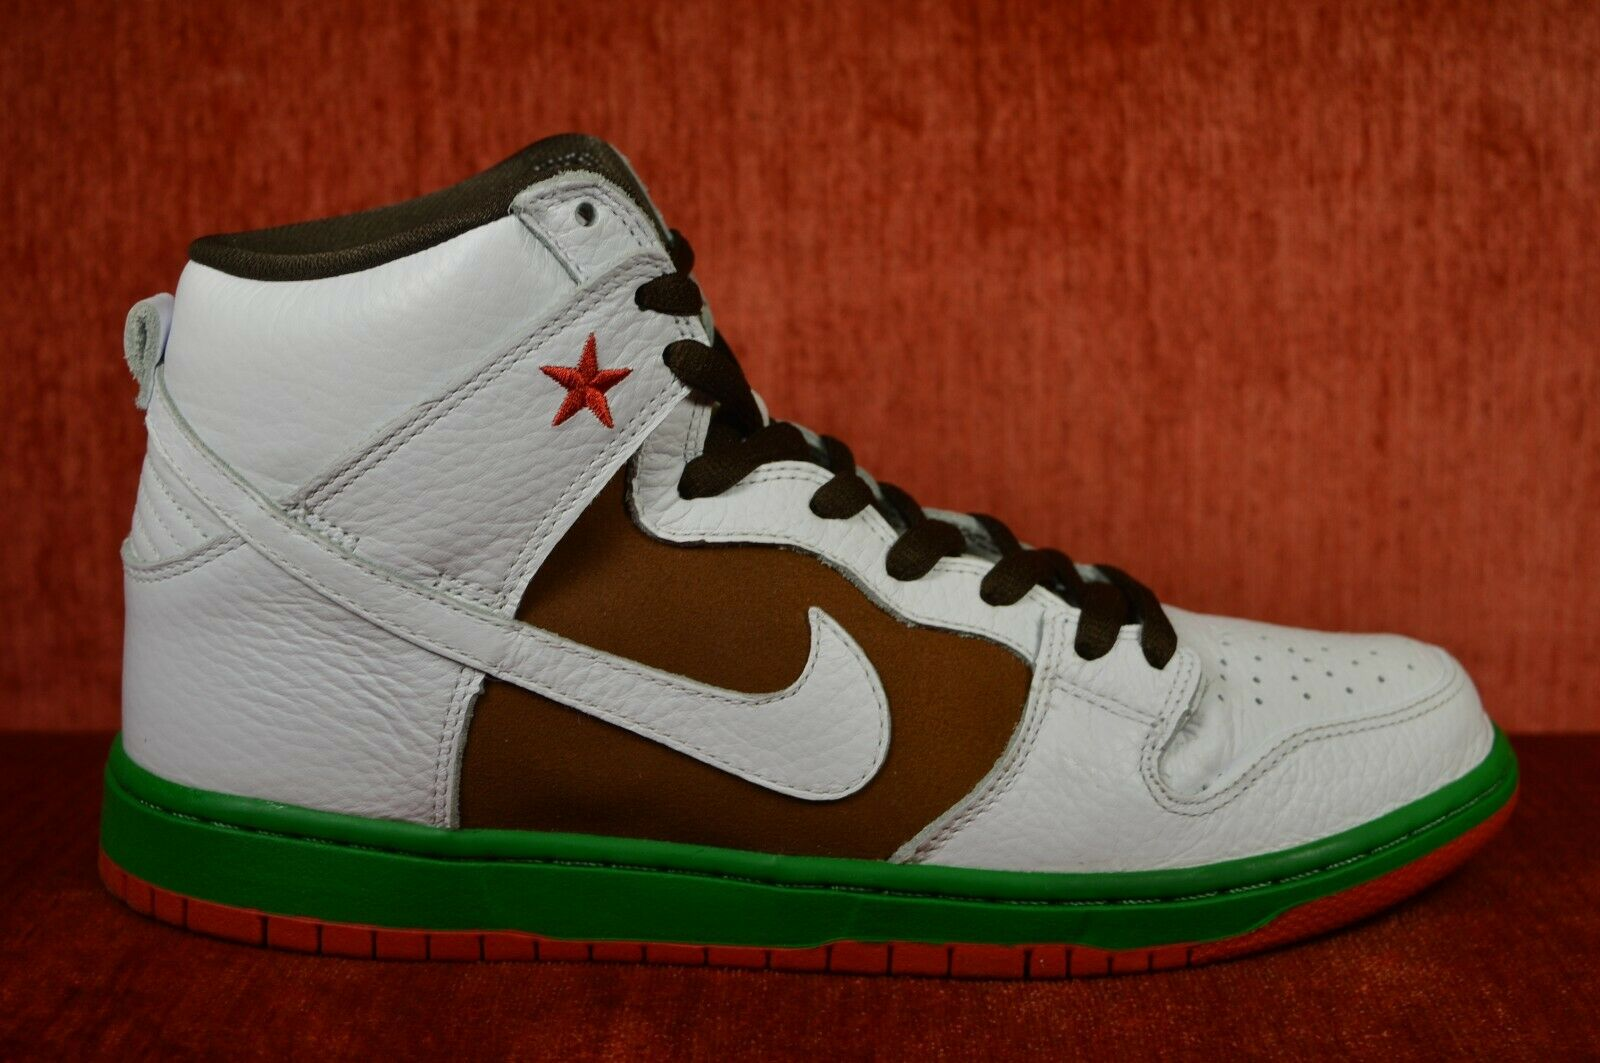 WORN ONCE Nike Dunk High Premium SB Cali Size 10.5 313171-201 White Green Red